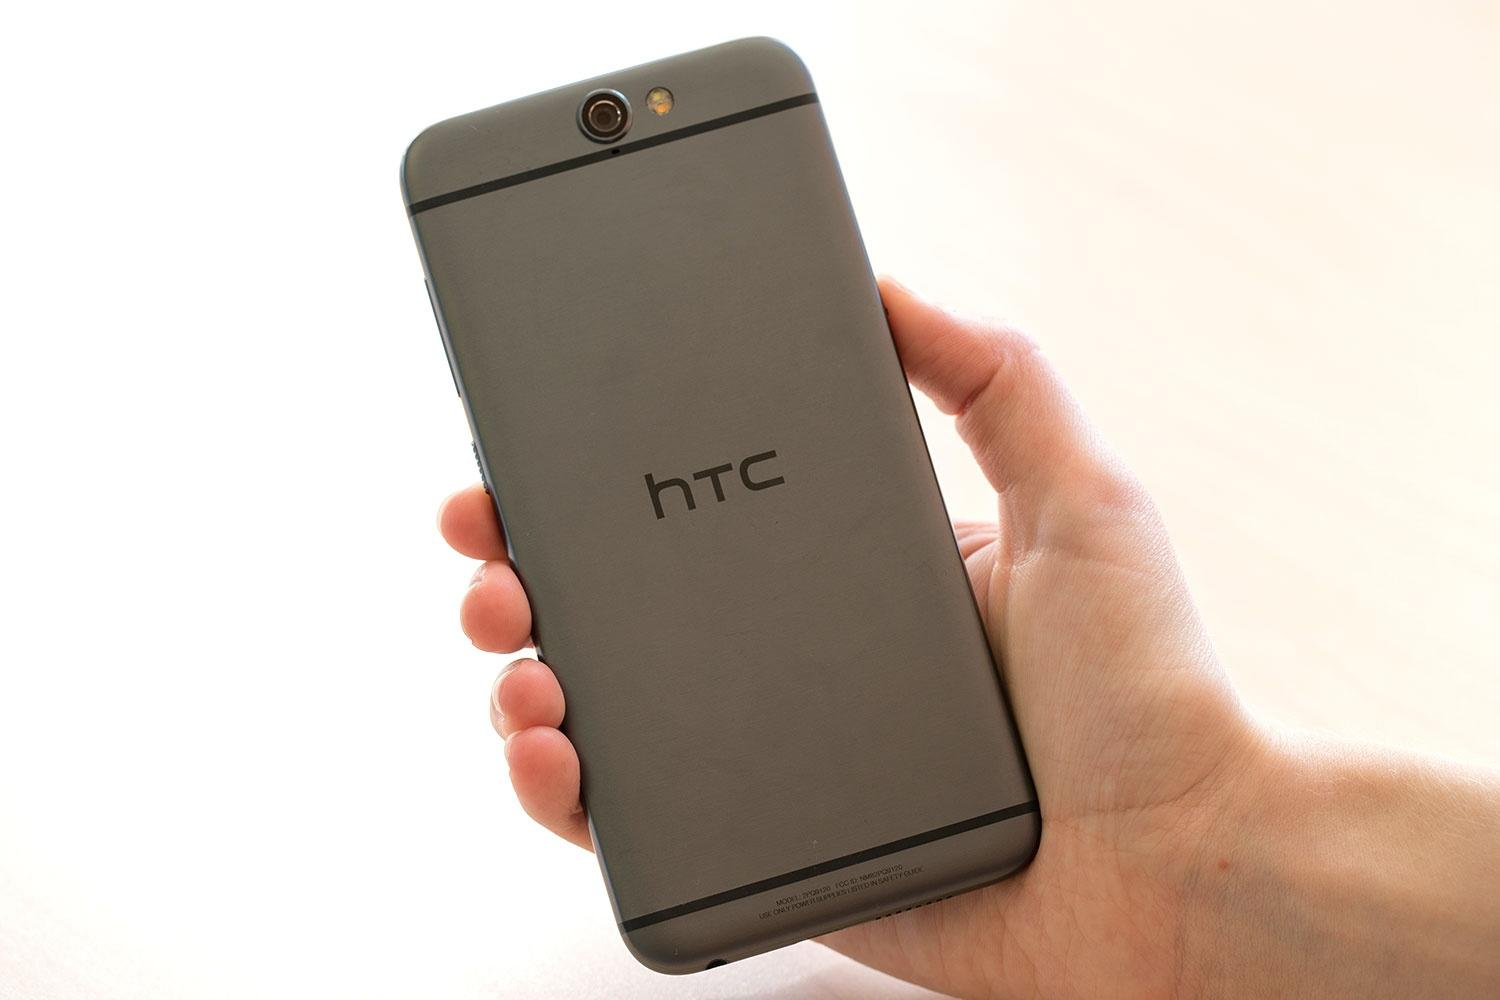 HTC's Preview program looks to give users a sneak peek into the company's future